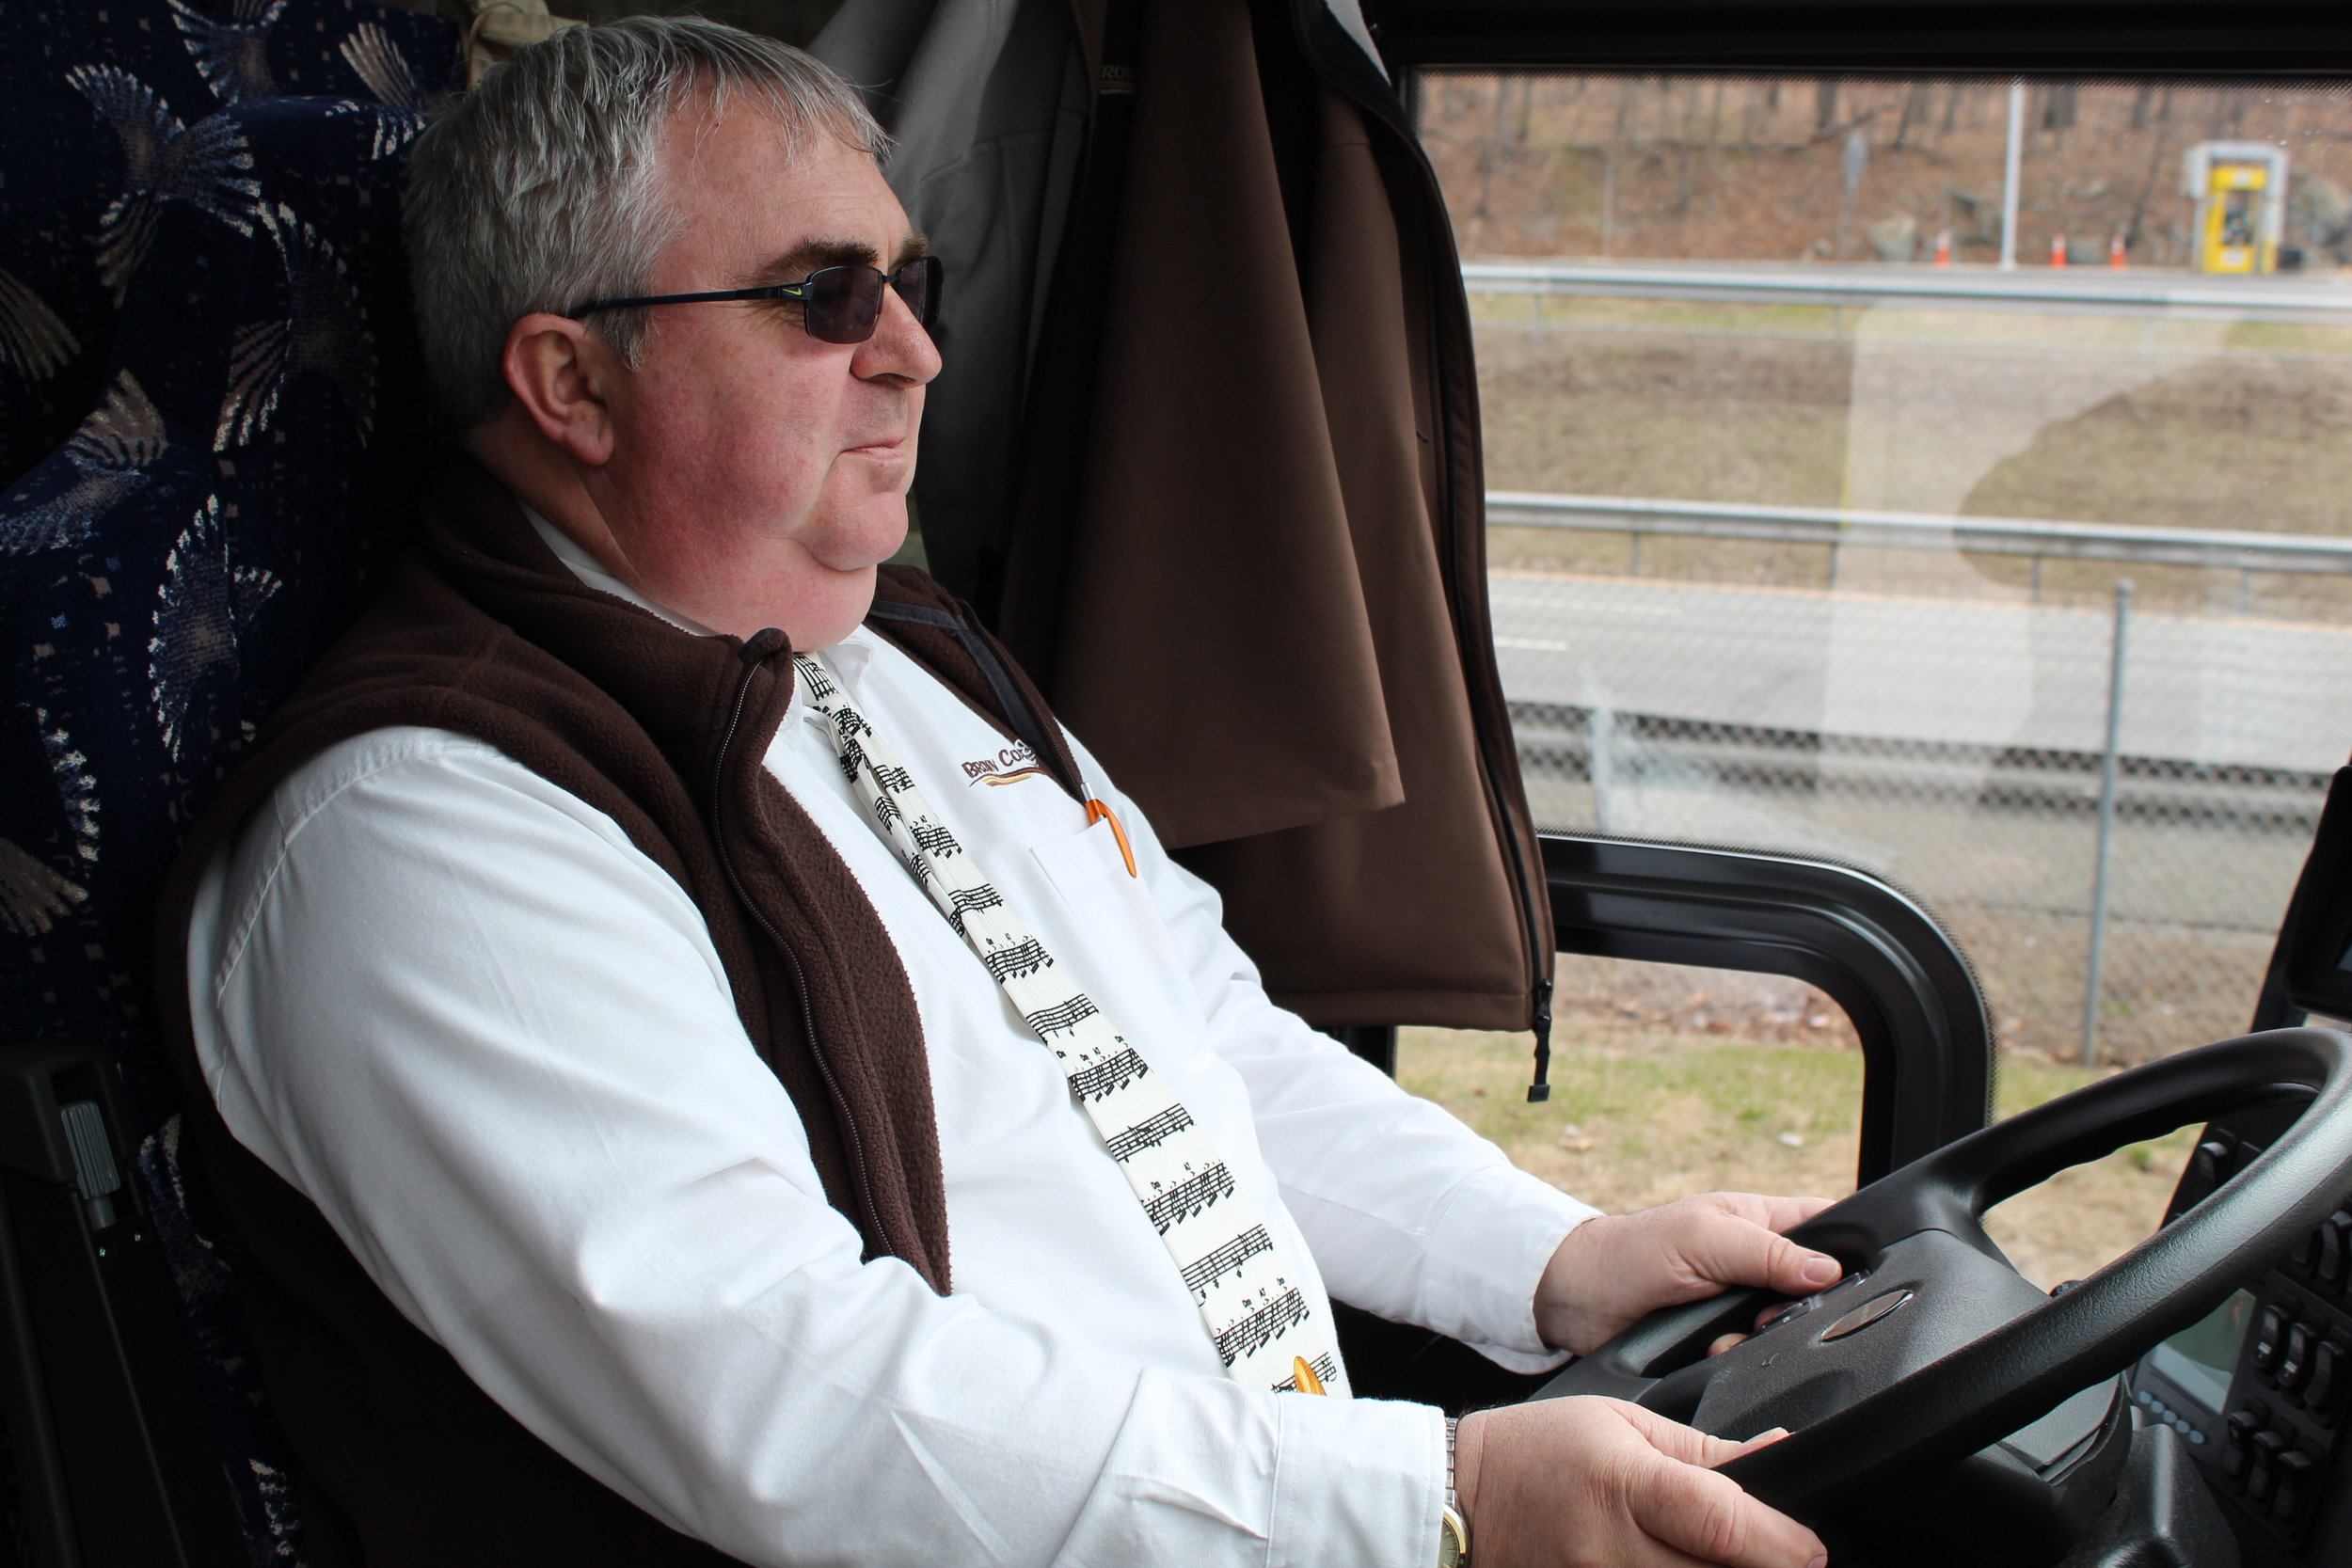 Meet Steve! Steve is the Operations Manager at Brown Transportation and one of our drivers. Did we mention that Steve and his wife Marilyn are Albany Symphony subscribers? We also really love his Tuba tie!